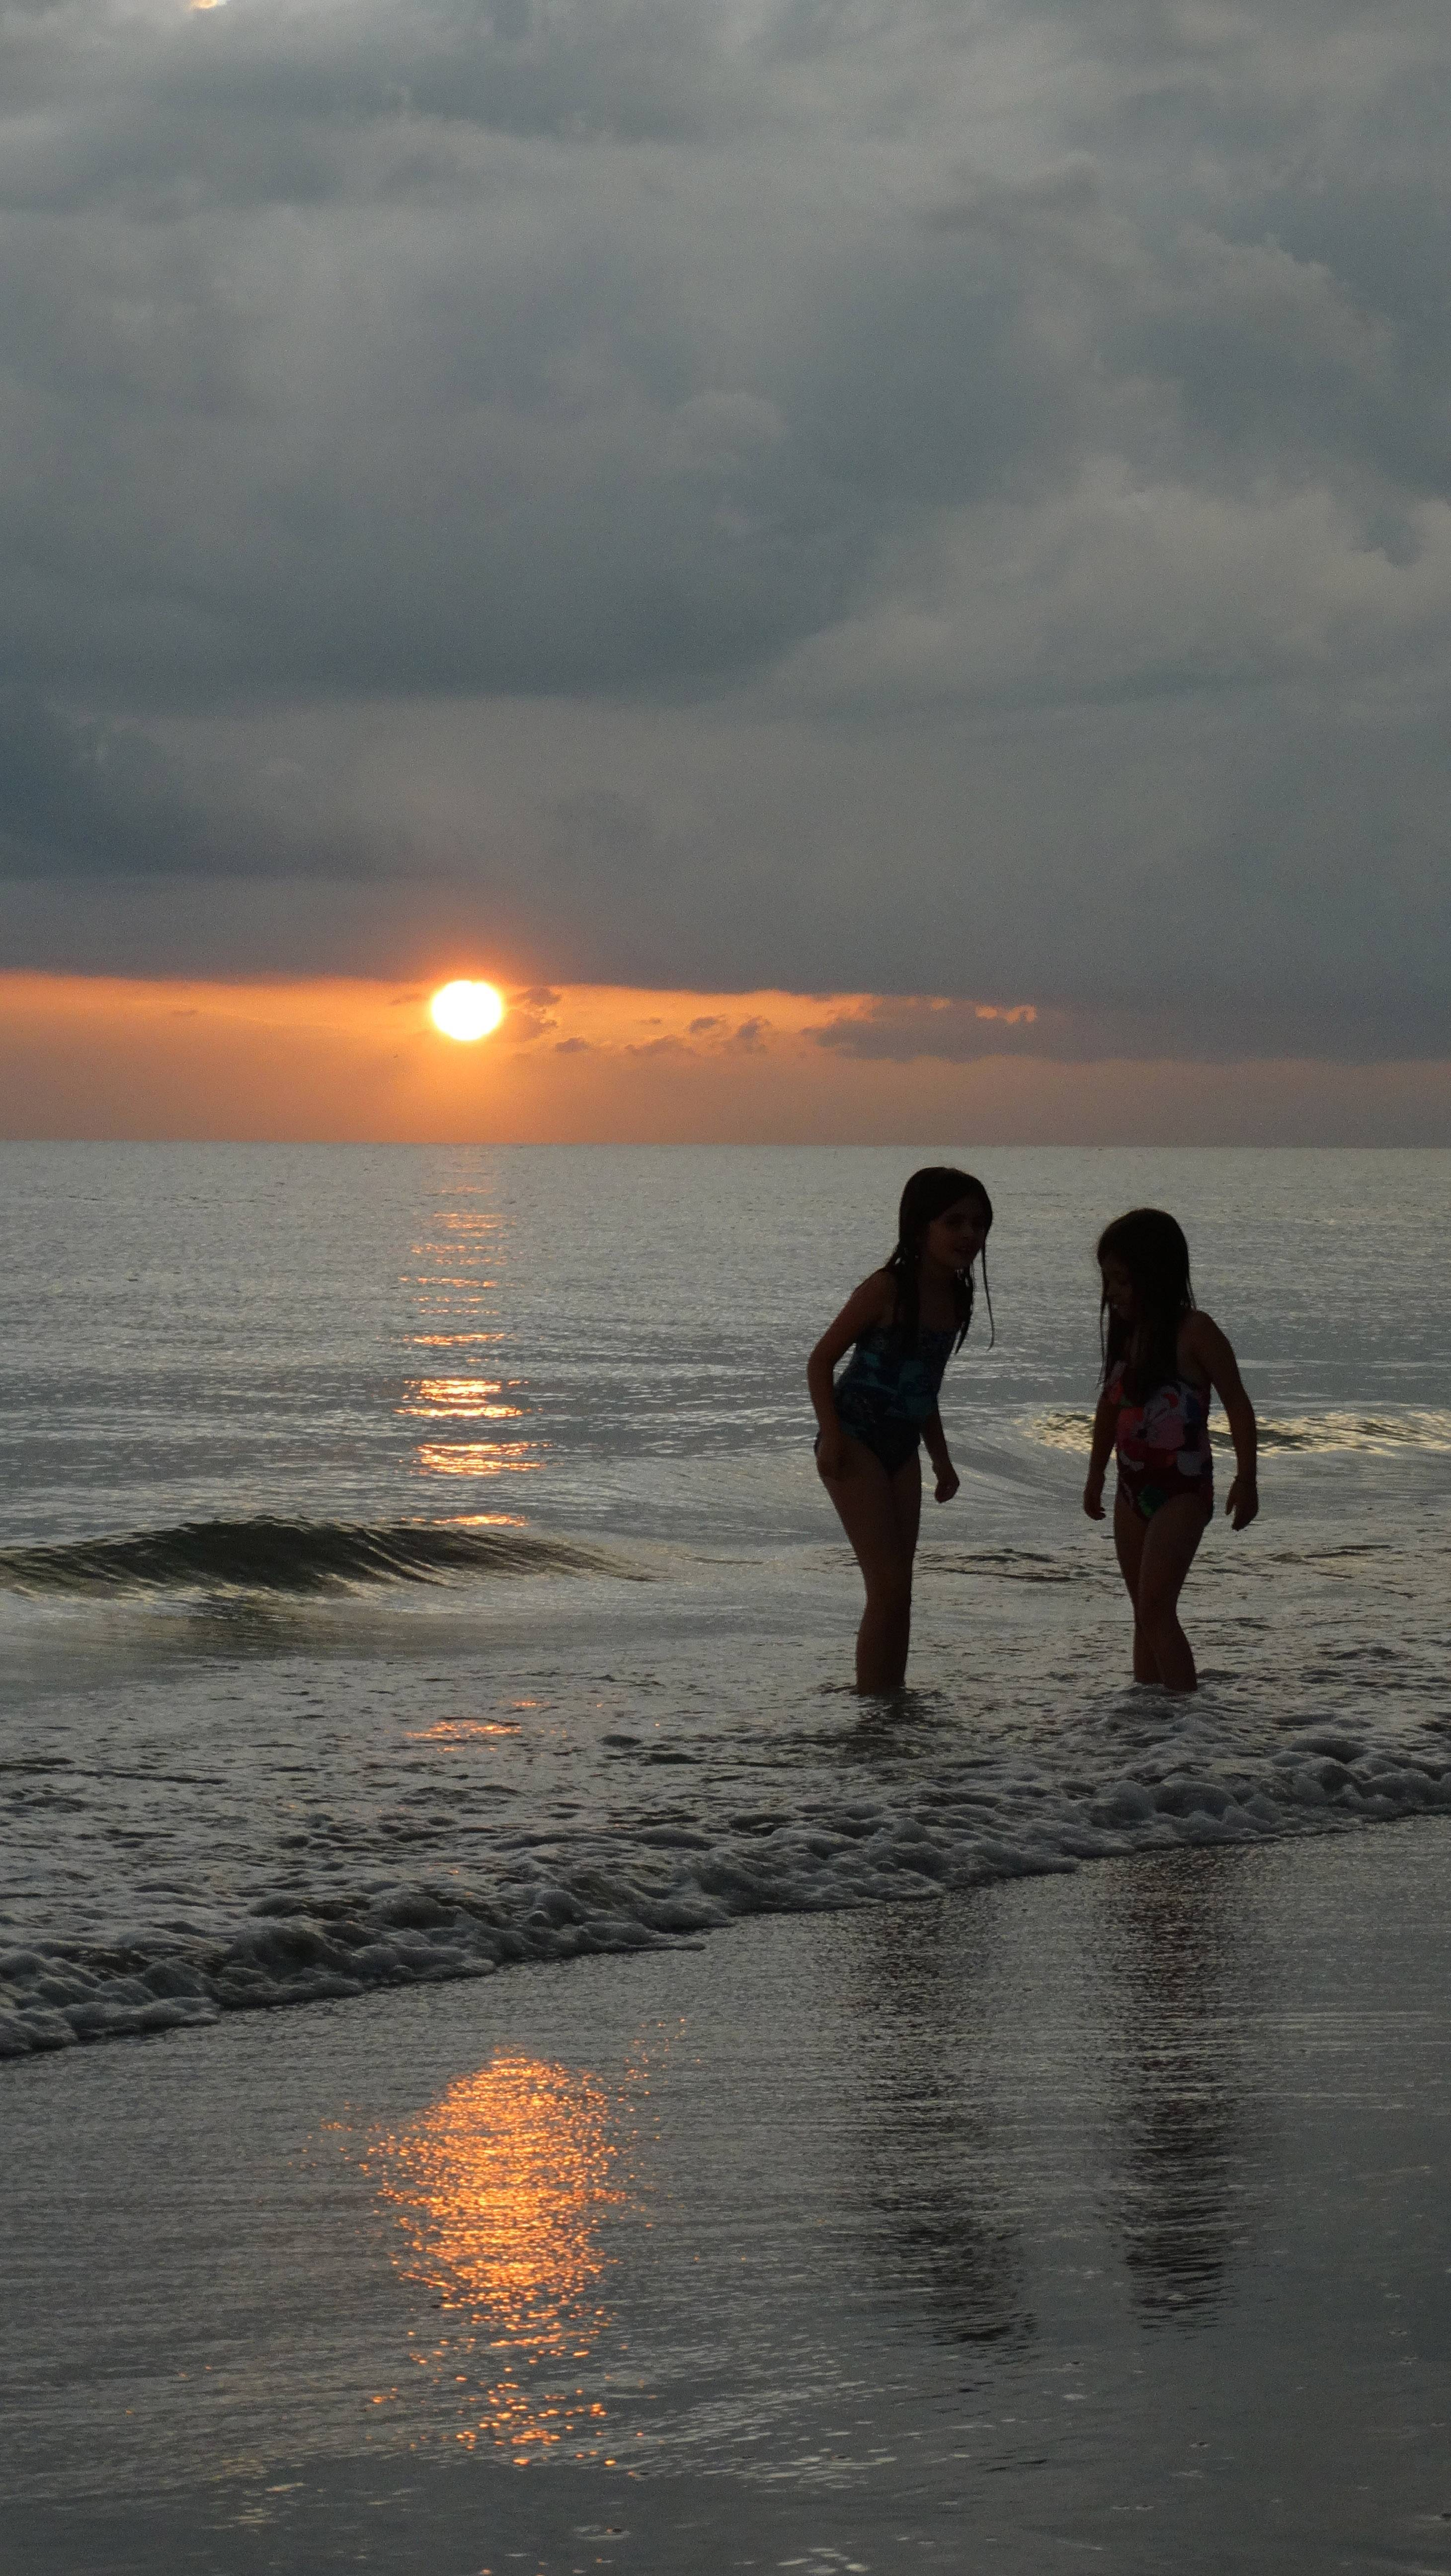 Watching my granddaughters (Sophia and Bailey ... ages 8 and 6) and the Sunset while on vacation in Florida with my daughter and her family who live in Kennesaw, Georgia.Photo was taken at Redington Beach, Florida.